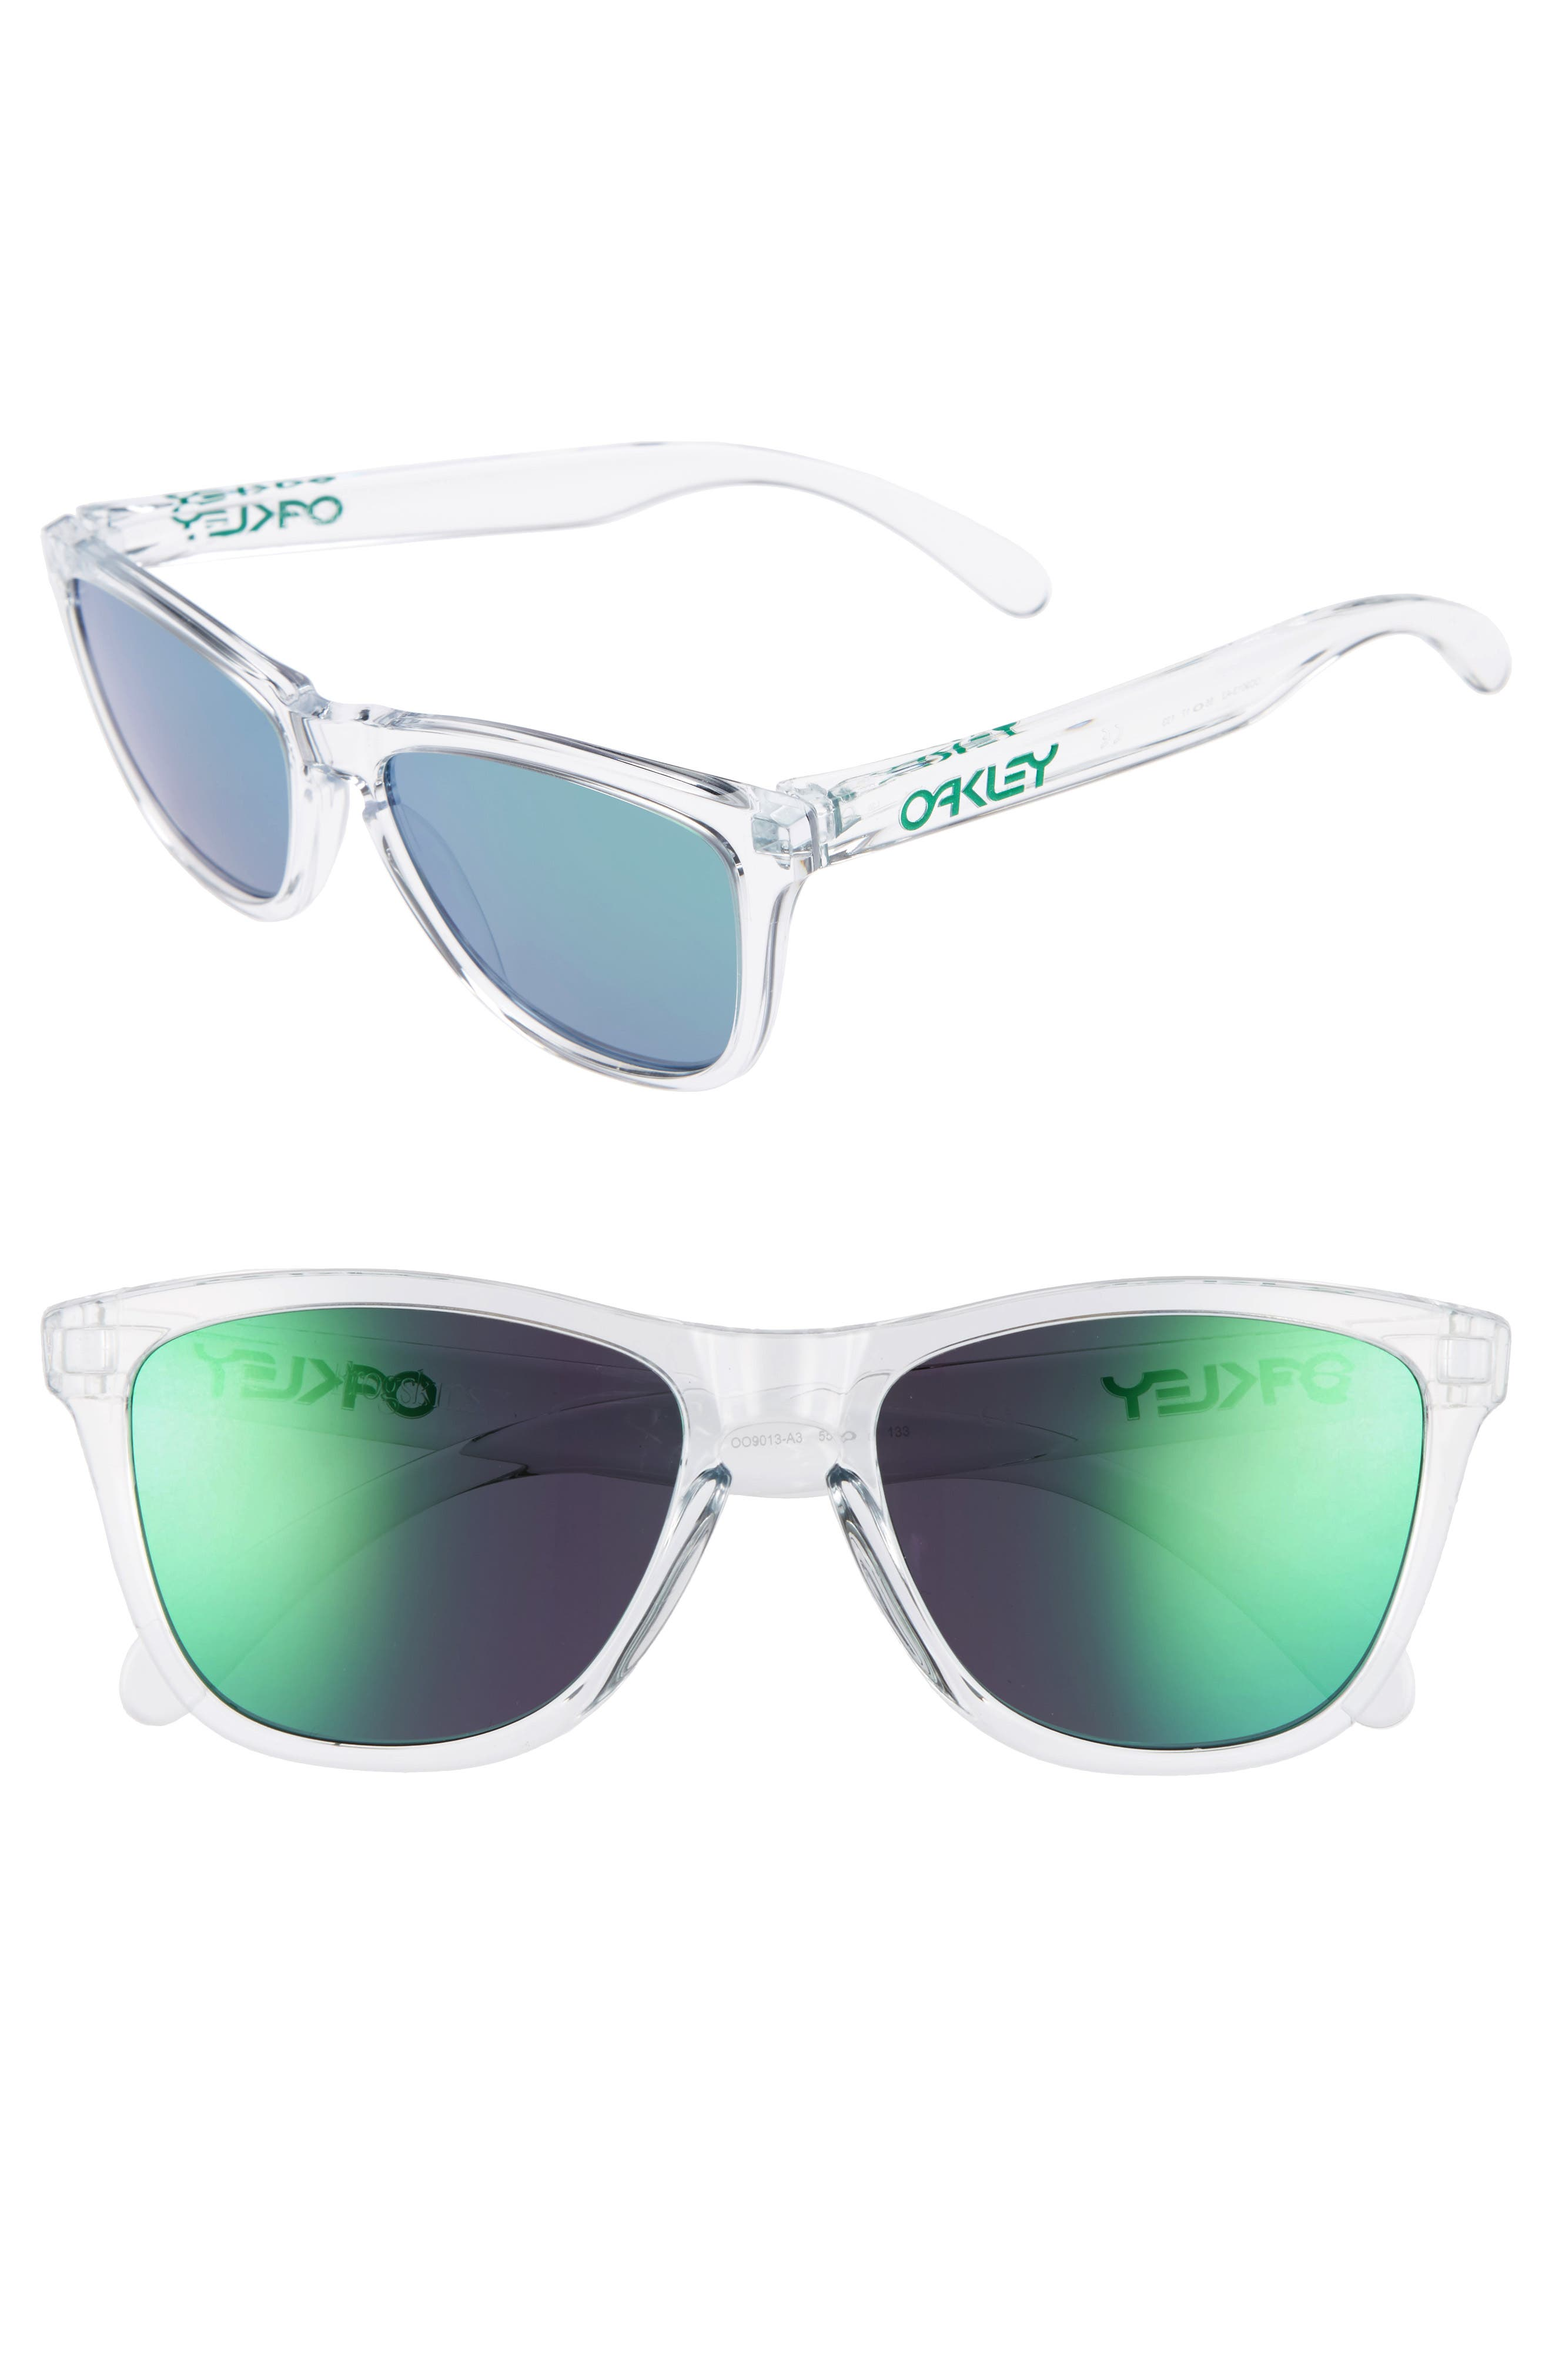 Frogskins<sup>®</sup> 55mm Sunglasses,                             Main thumbnail 1, color,                             300